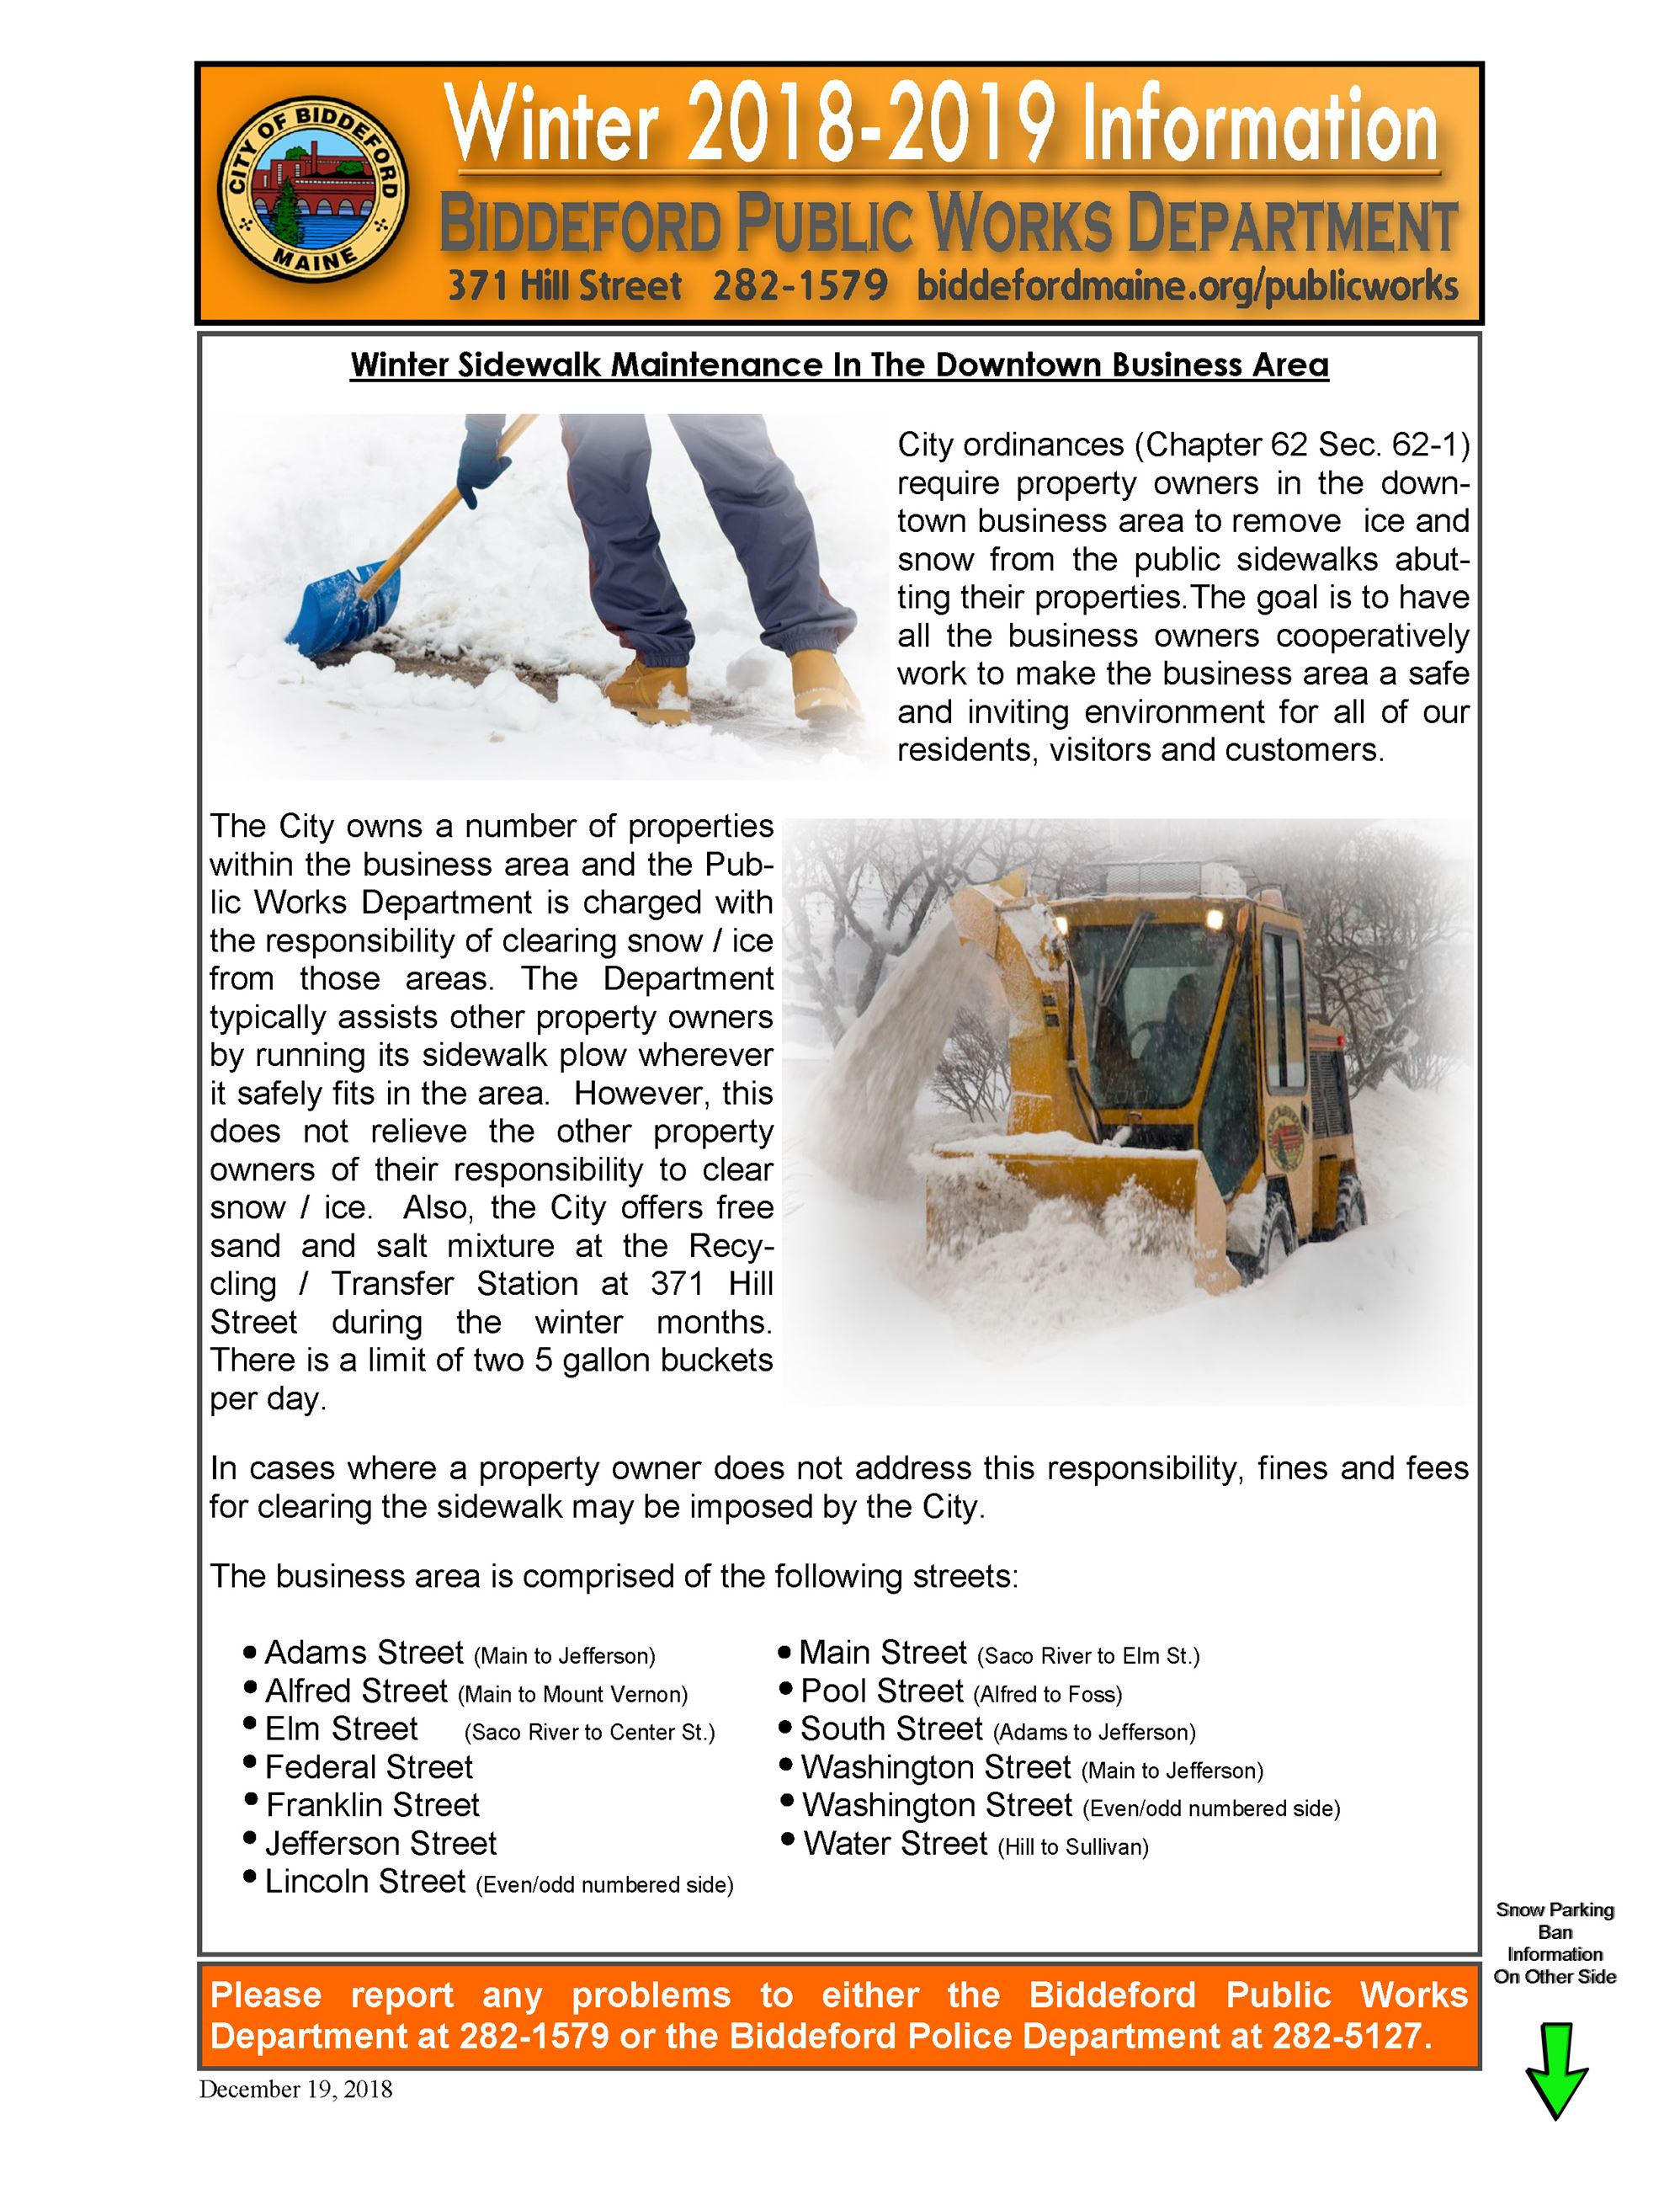 PUBLIC WORKS - Winter Ops - 2018-2019 - December 19 2018 - revised 01282019_Page_2